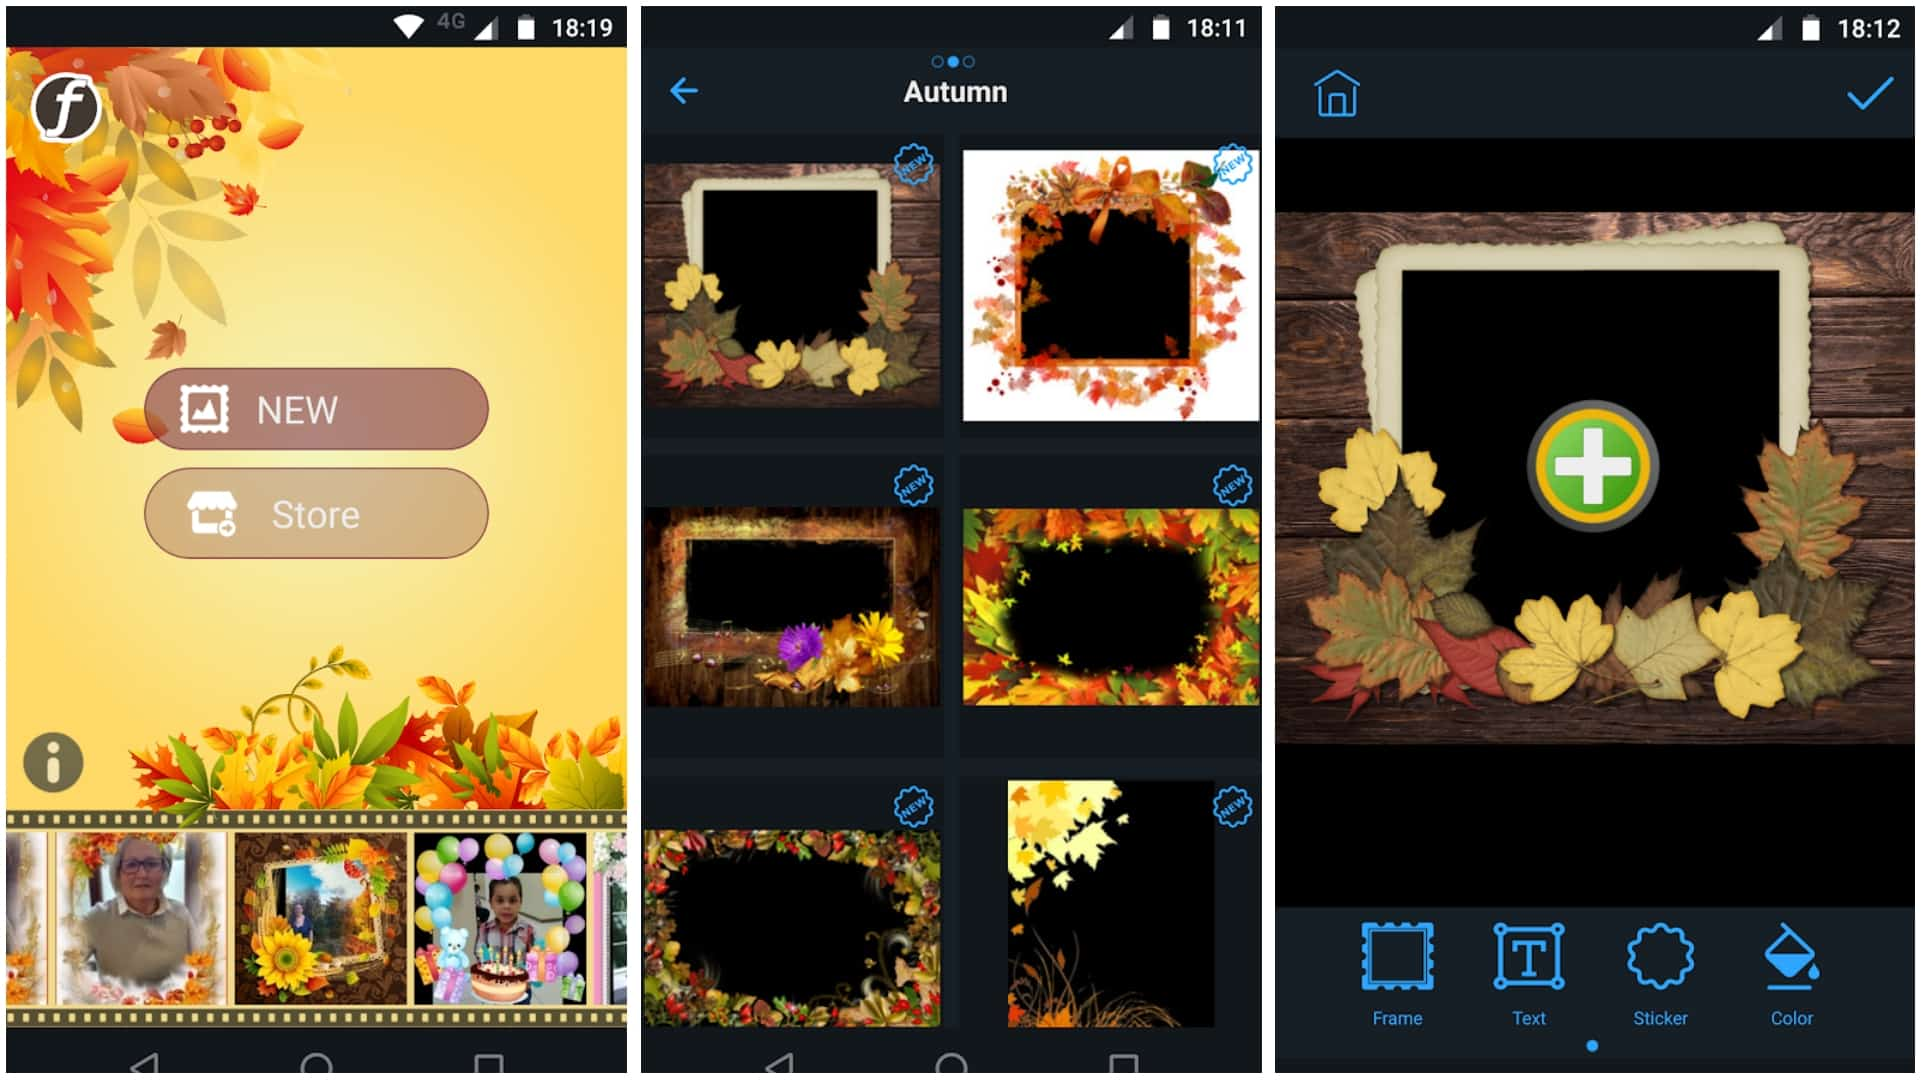 Autumn Photo Frames app grid image 1